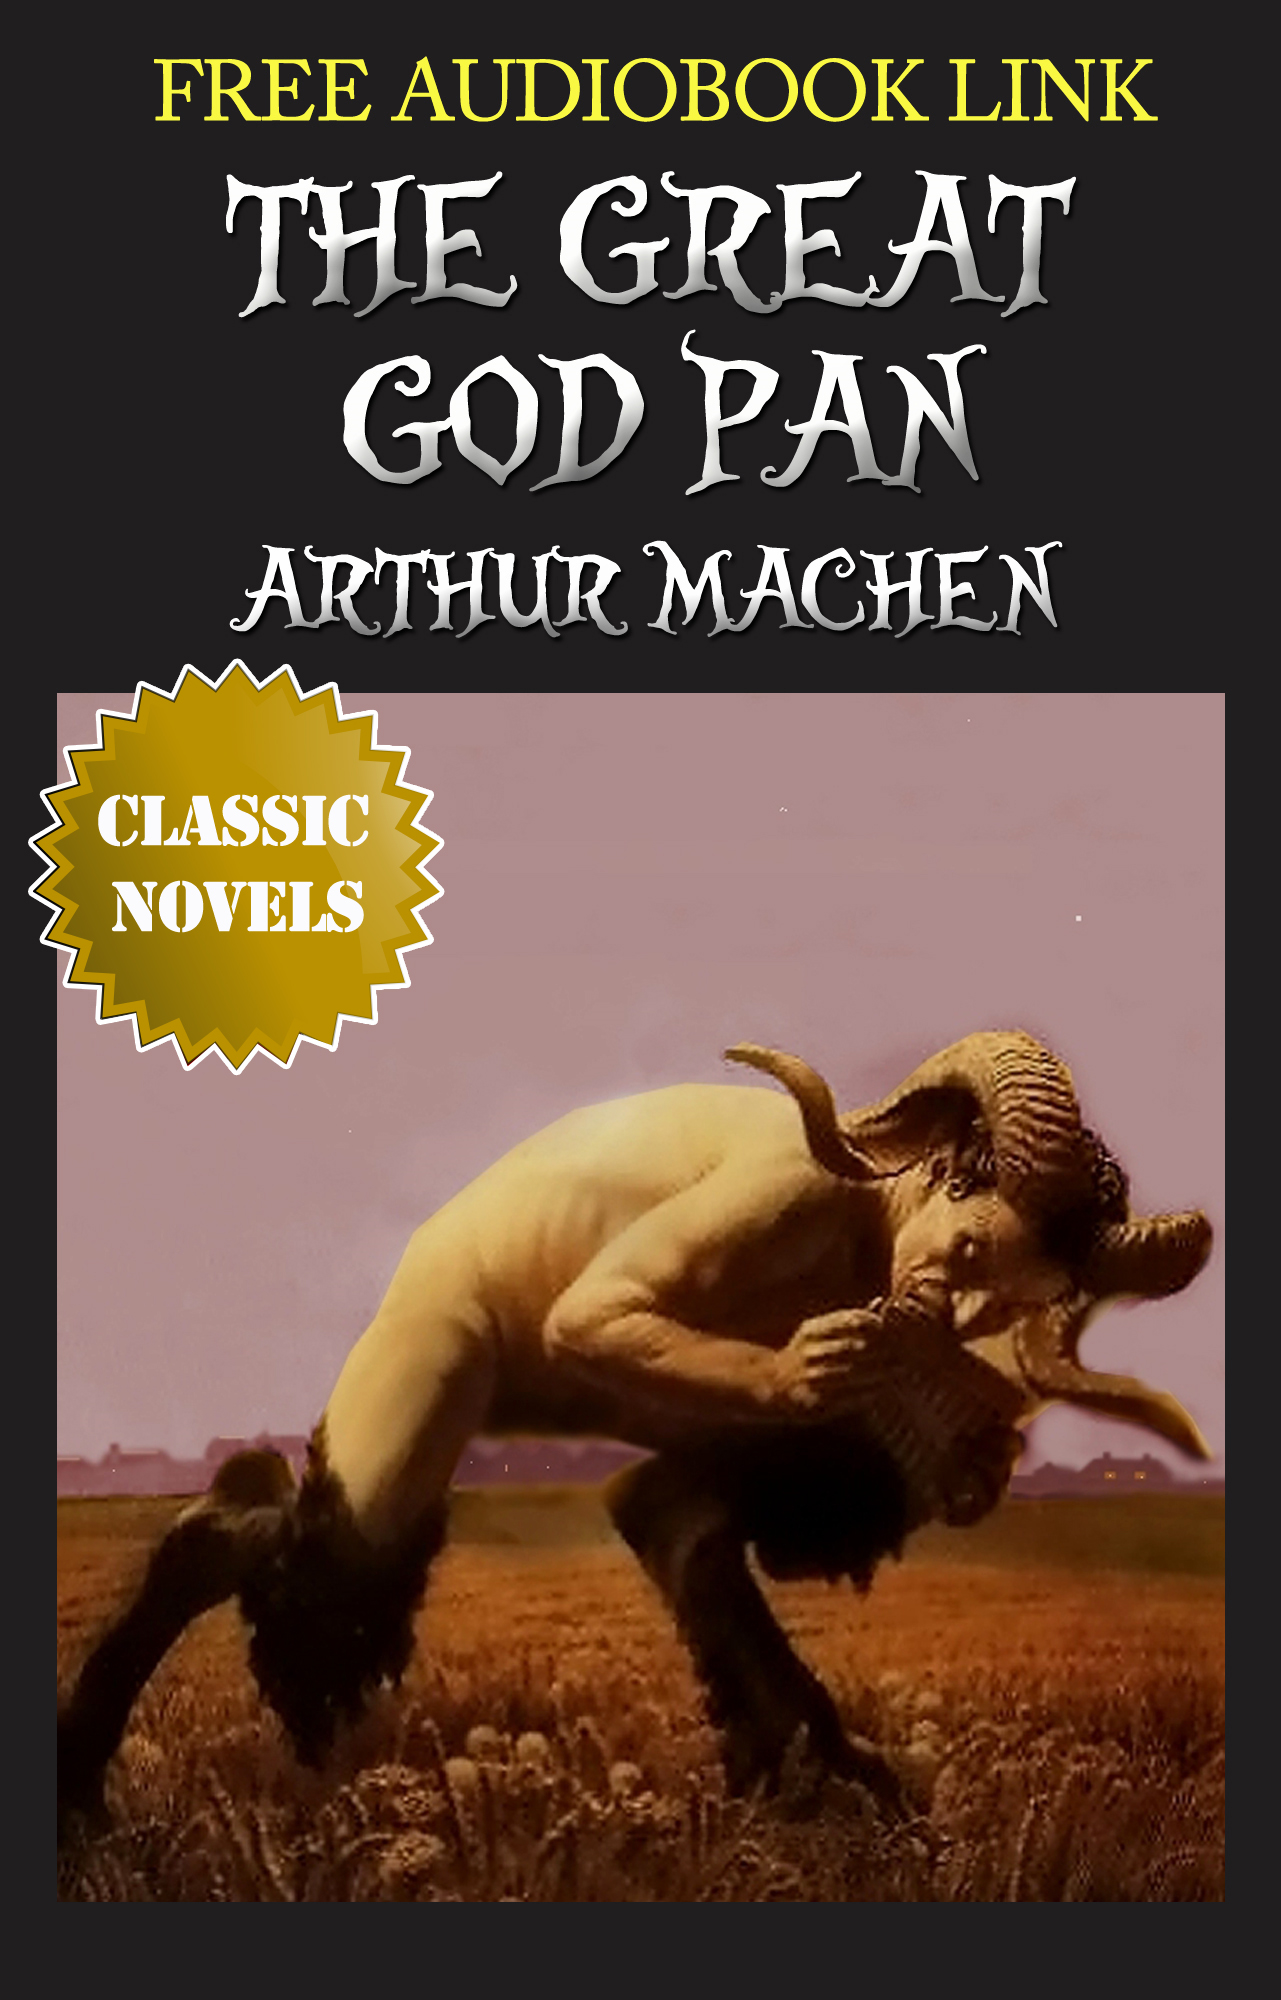 THE GREAT GOD PAN Classic Novels: New Illustrated [Free Audio Links] By: ARTHUR MACHEN